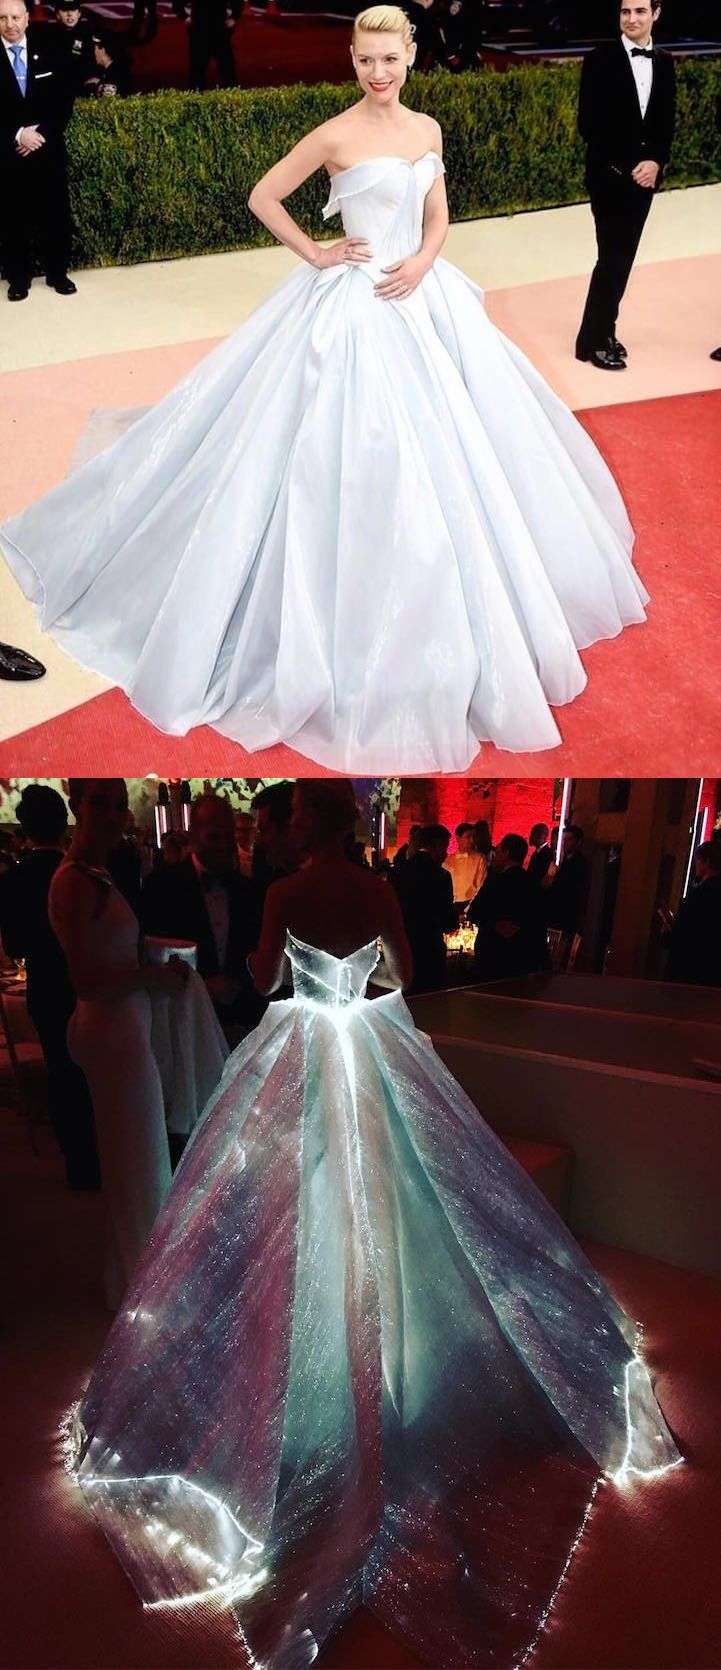 claire danes becomes reallife cinderella at the met gala